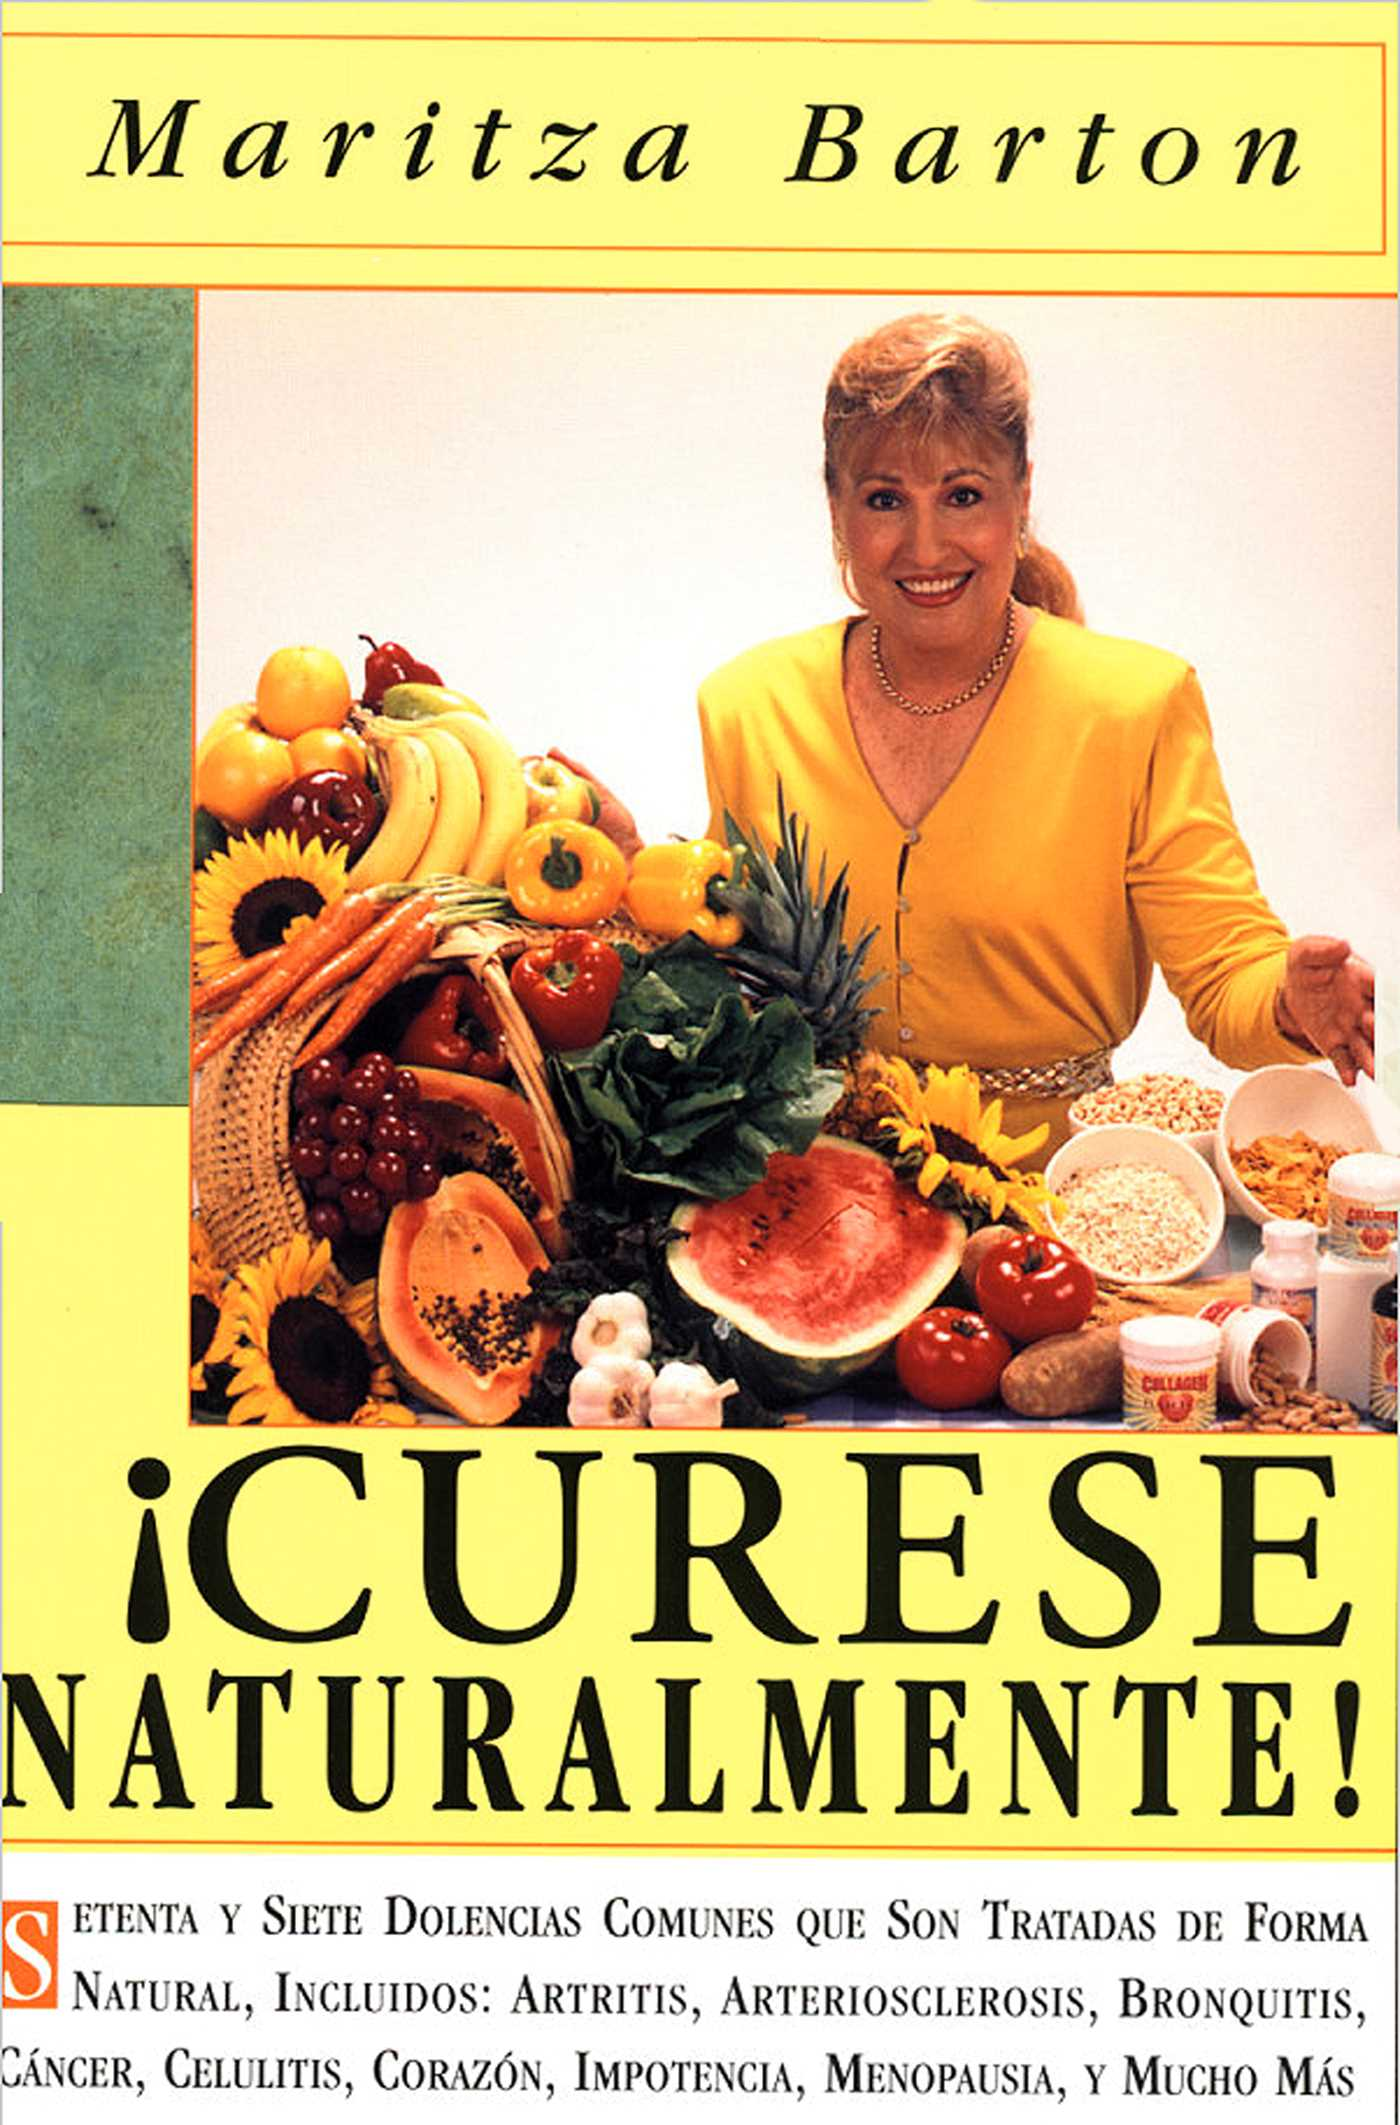 Curese naturaltmente 9781451634983 hr